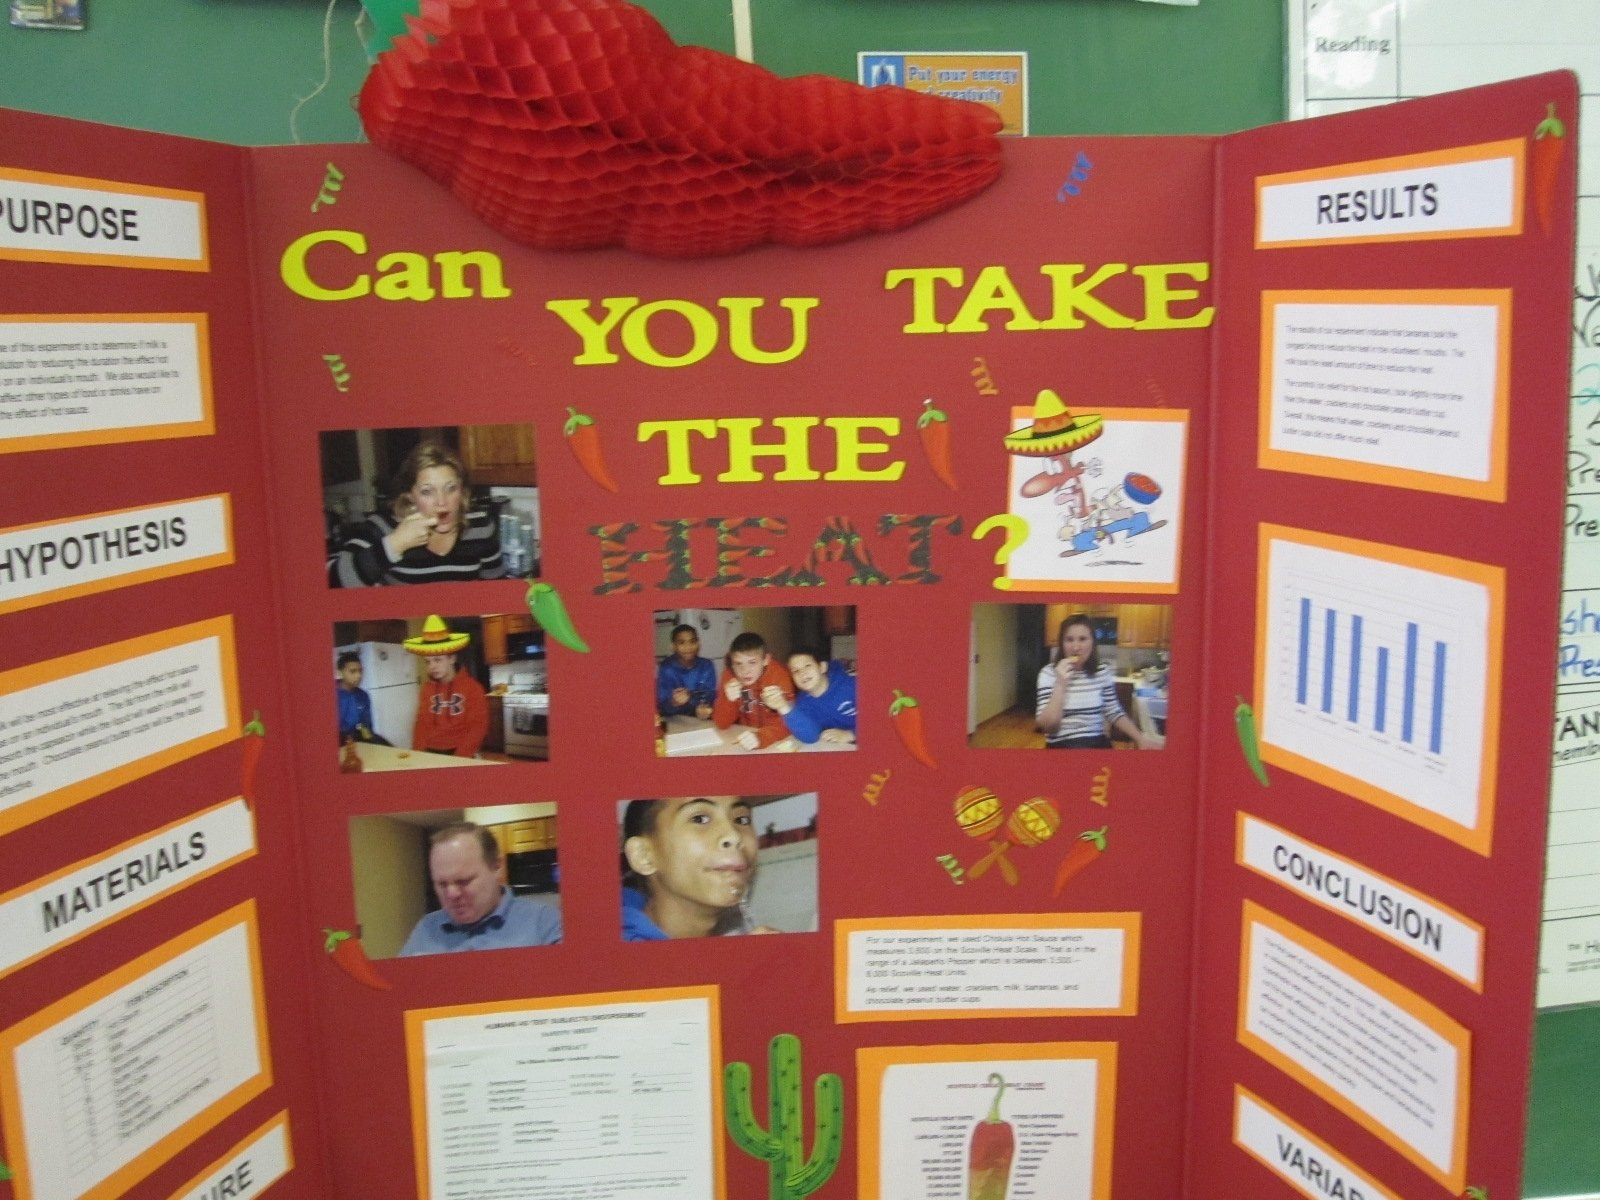 10 Amazing 8Th Grade Science Project Ideas endearing 8th grade science experiment project ideas for your 5 2021